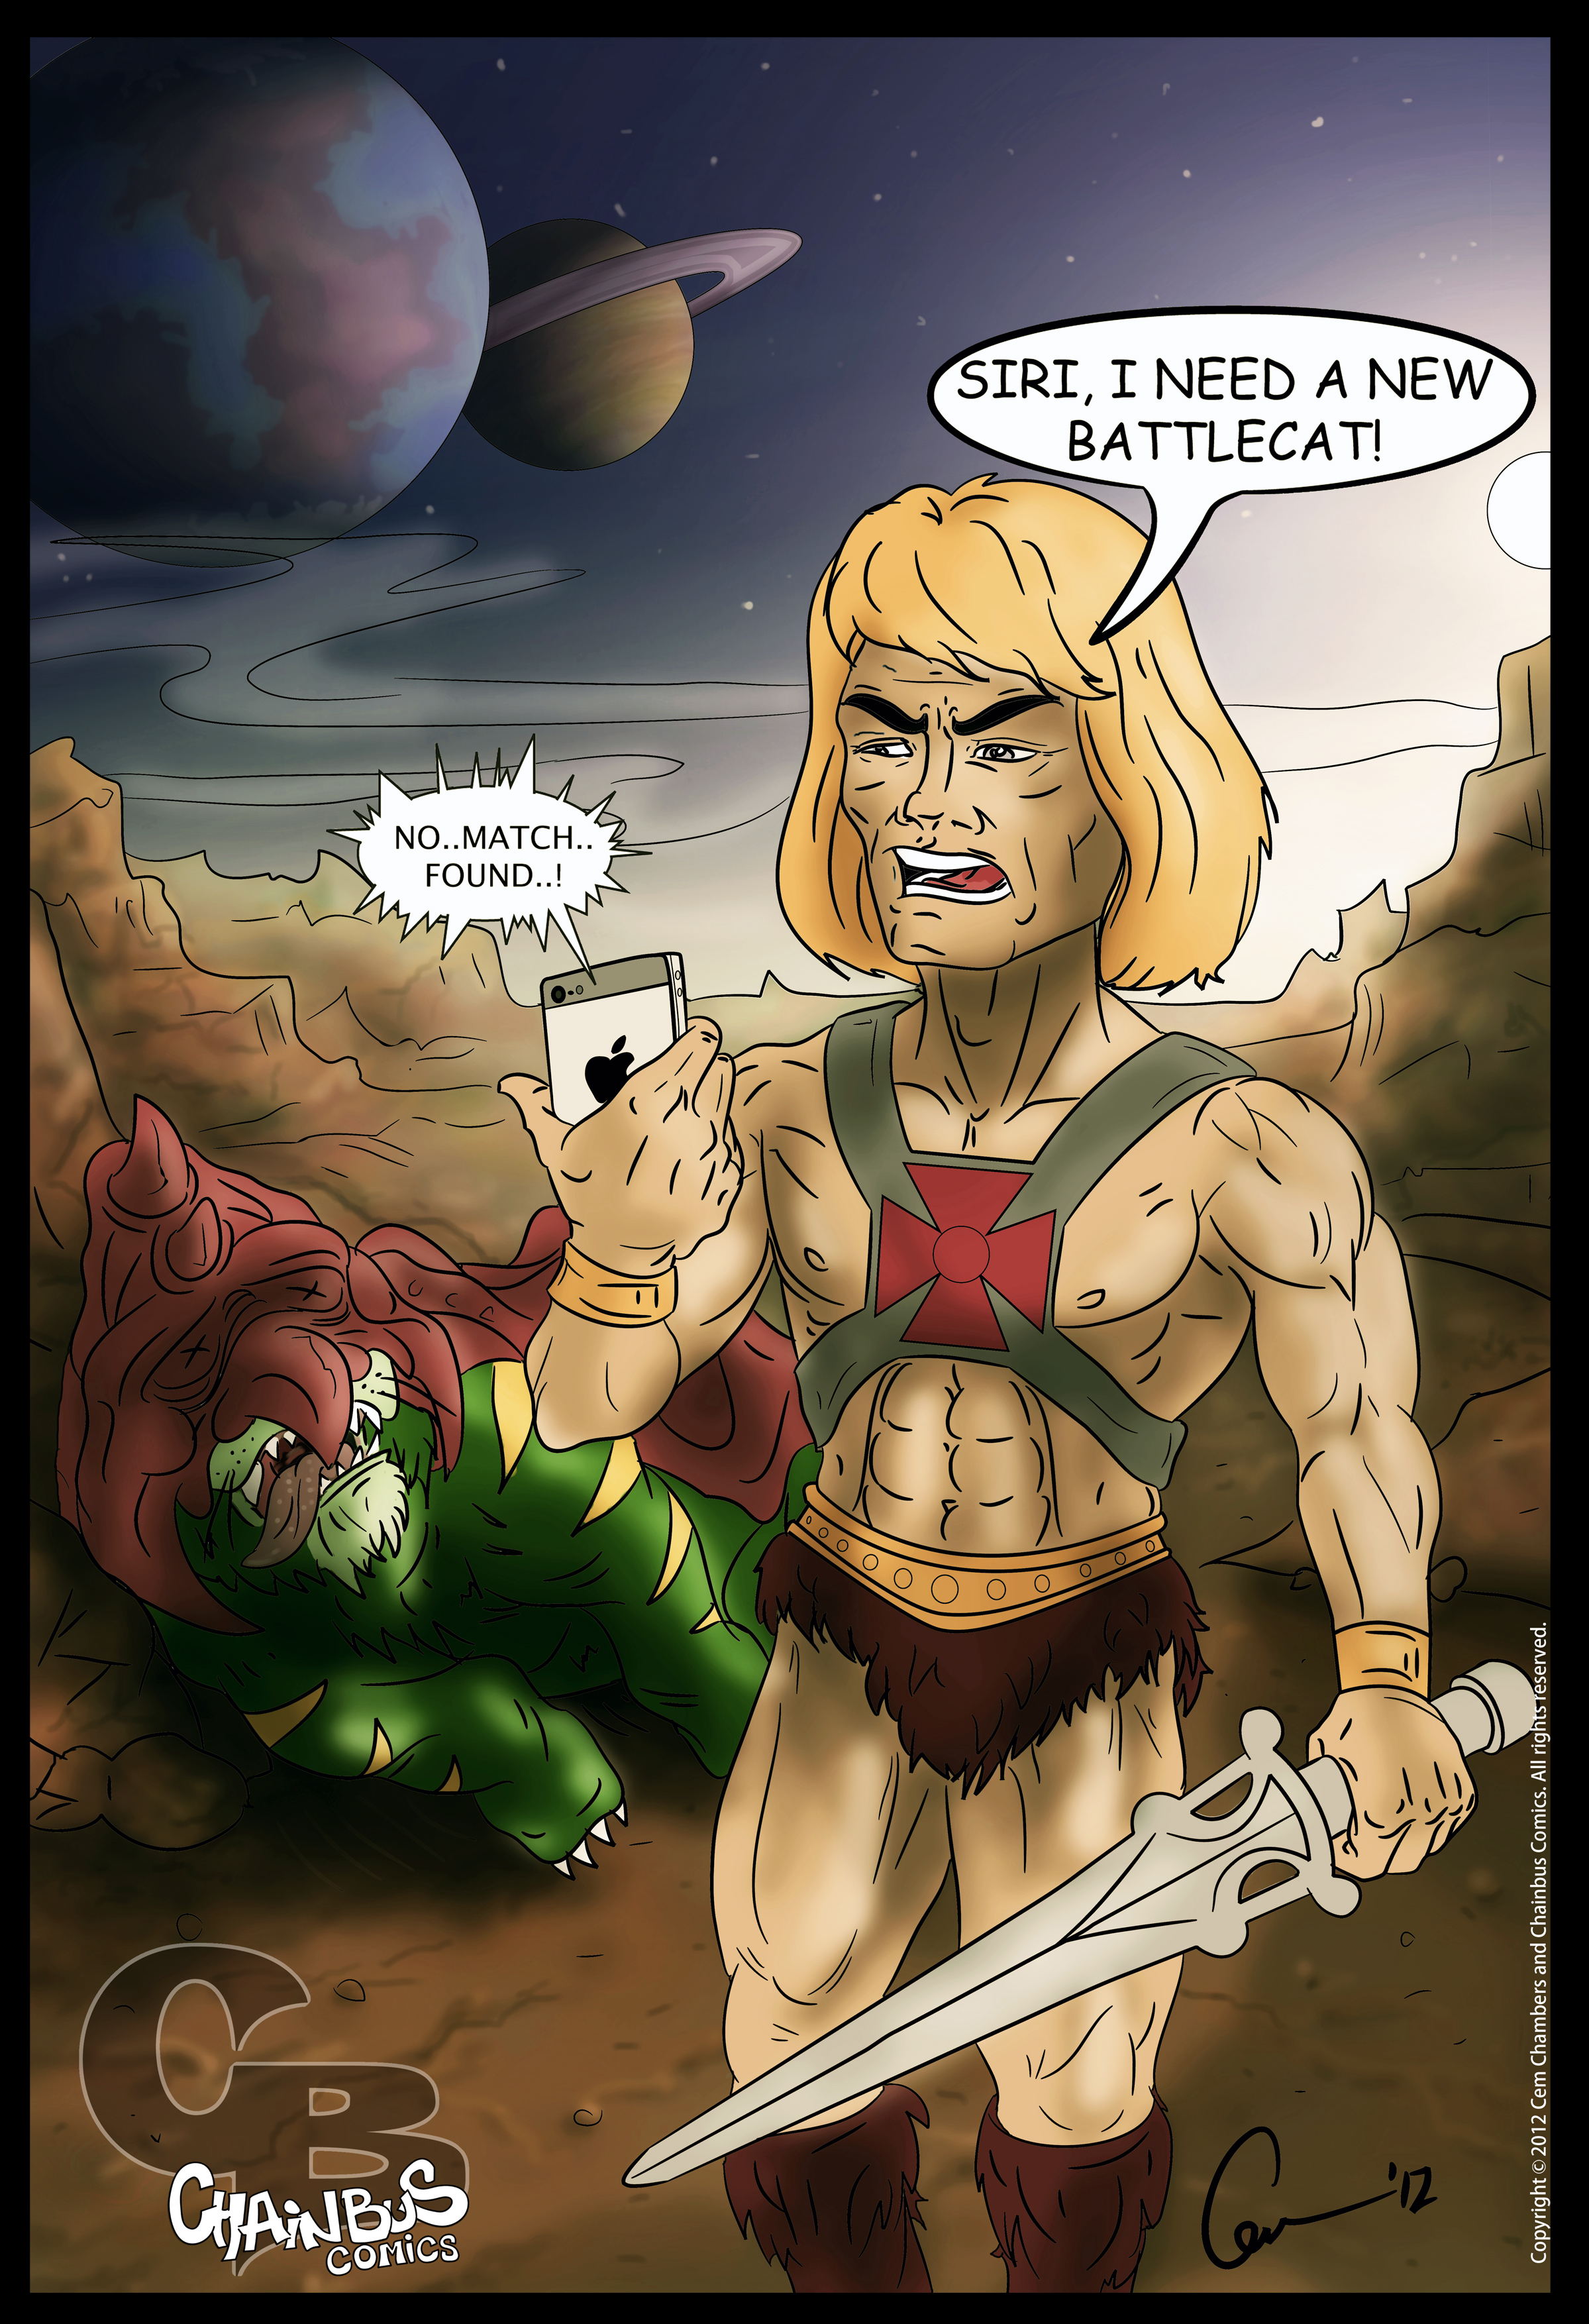 Old He-man with new toy